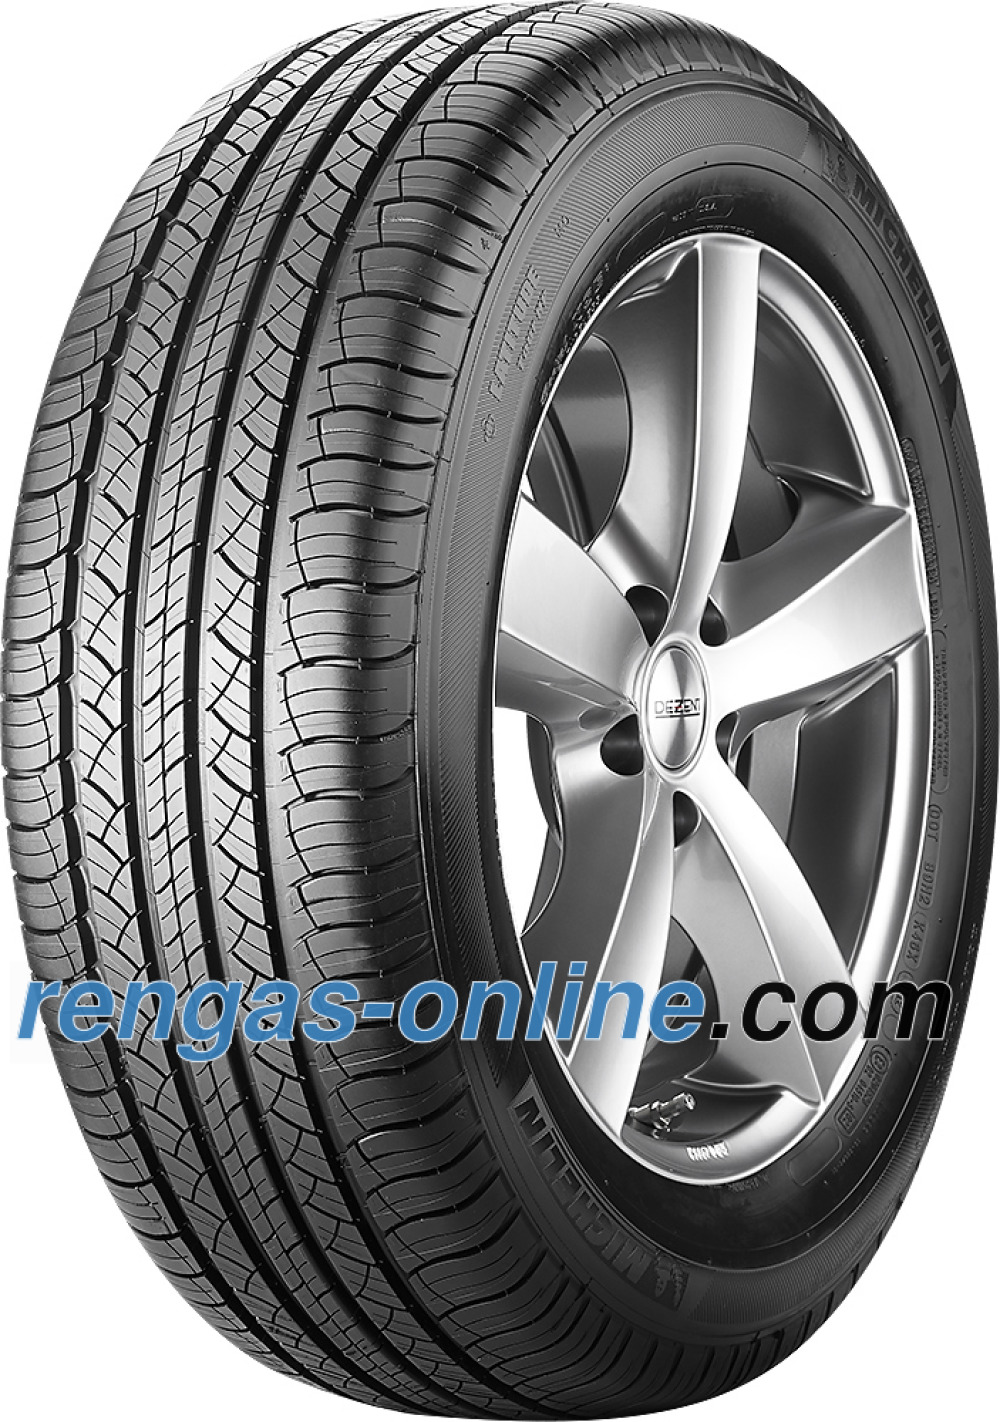 michelin-latitude-tour-hp-23560-r18-103v